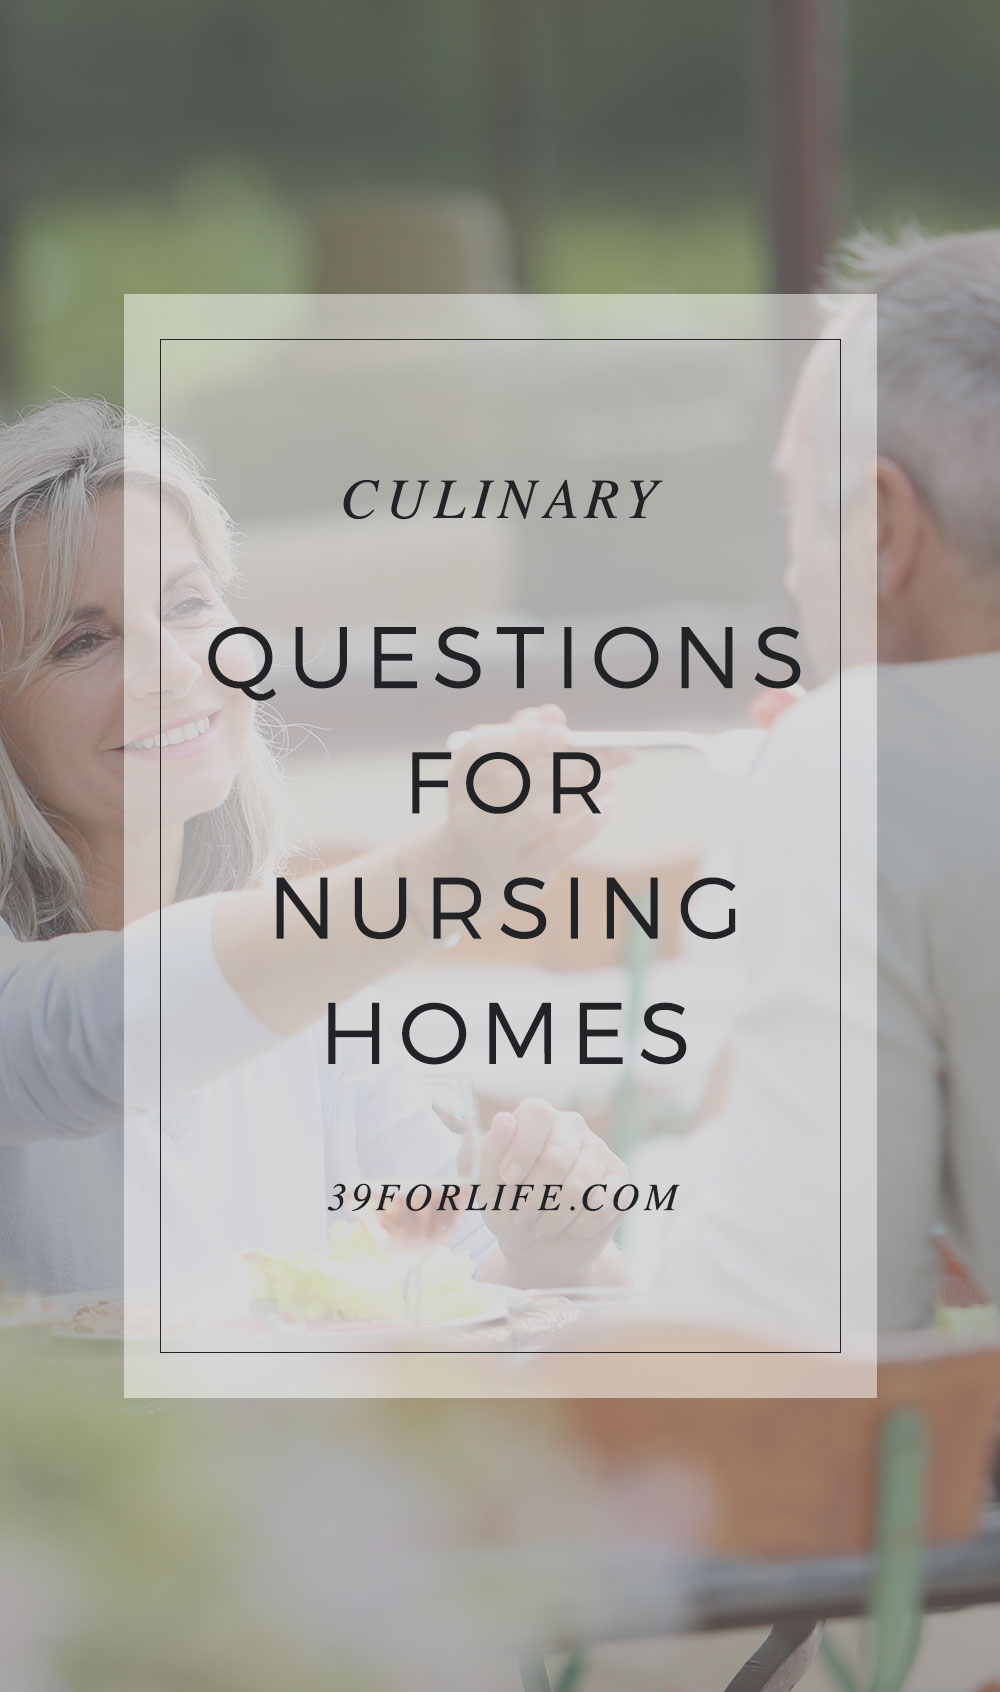 When searching for a nursing home, don't forget to ask about the food! Nursing home nutritional choices are crucial to a good long-term care experience.